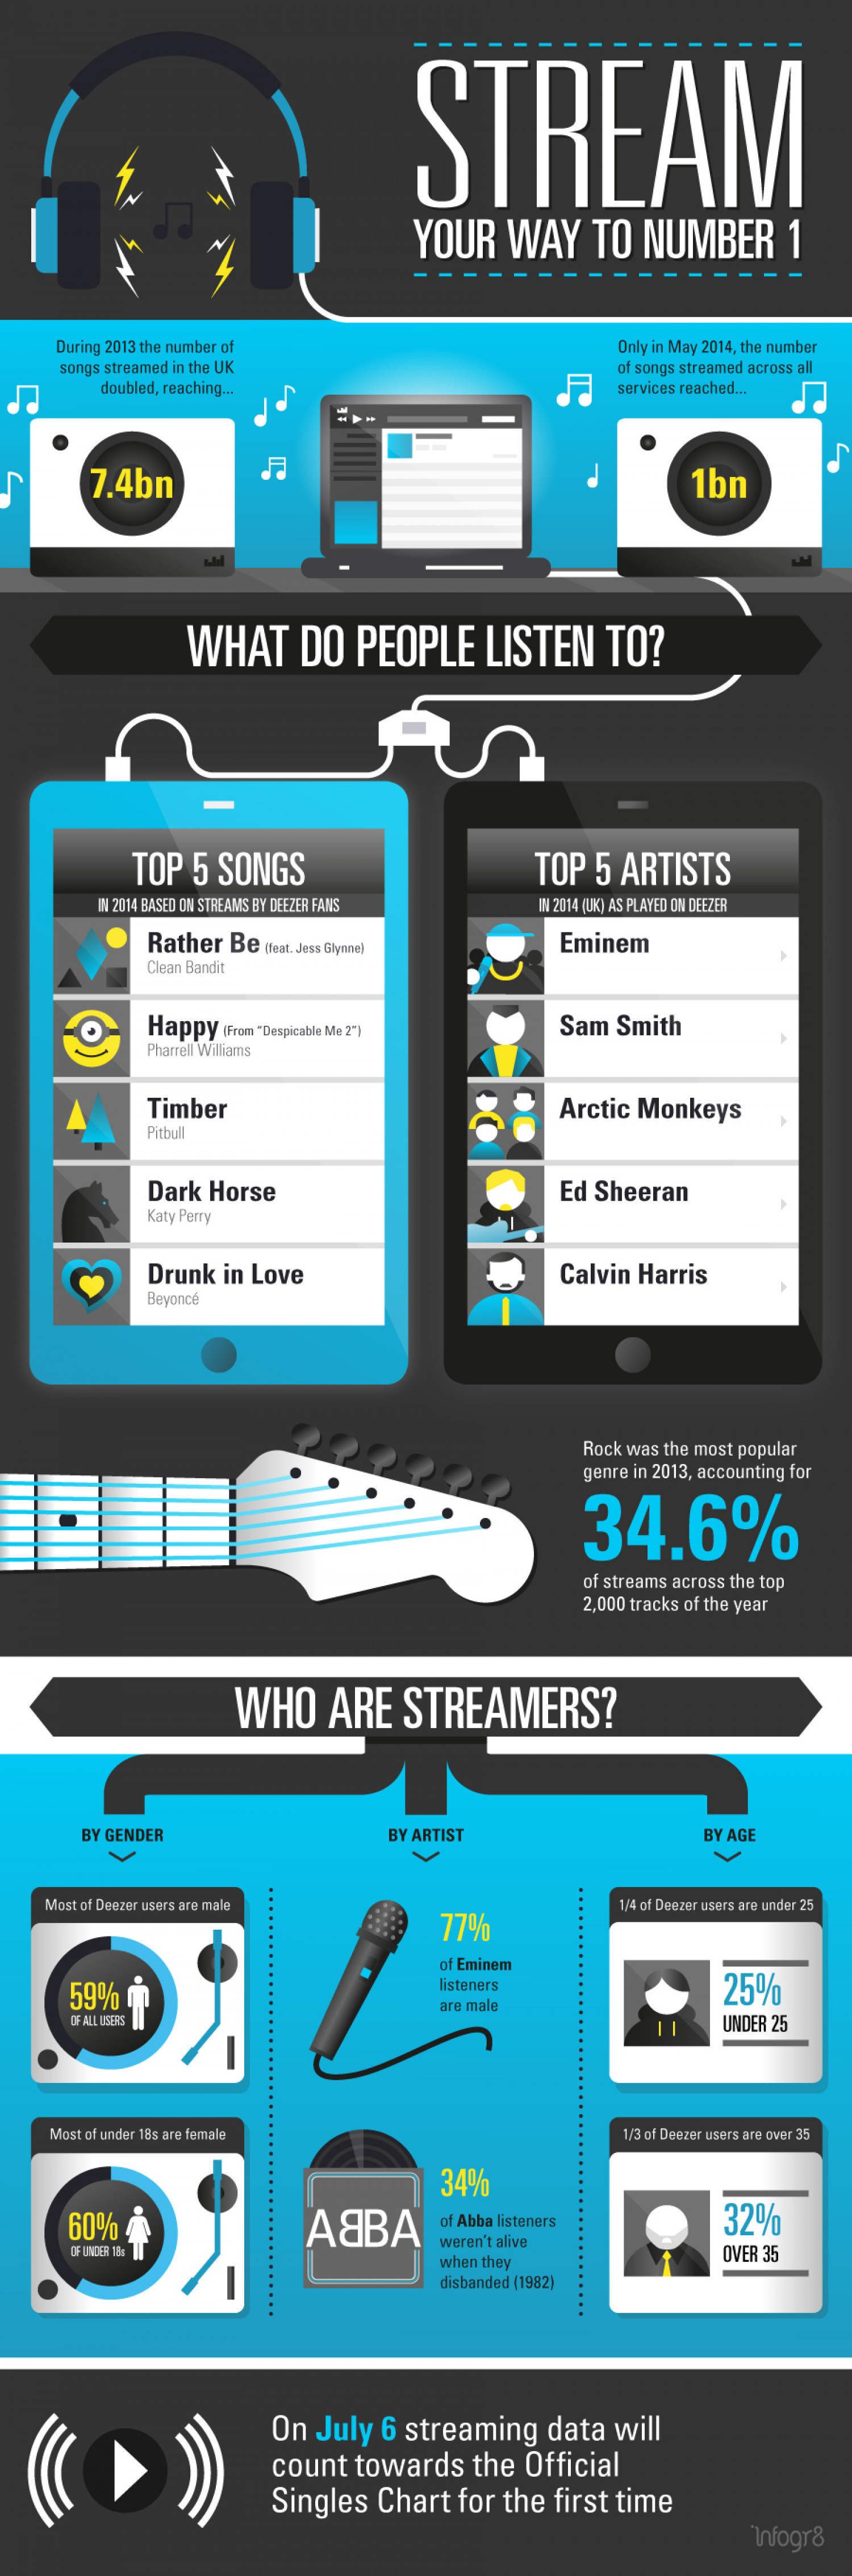 Stream Your Way To #1 Infographic